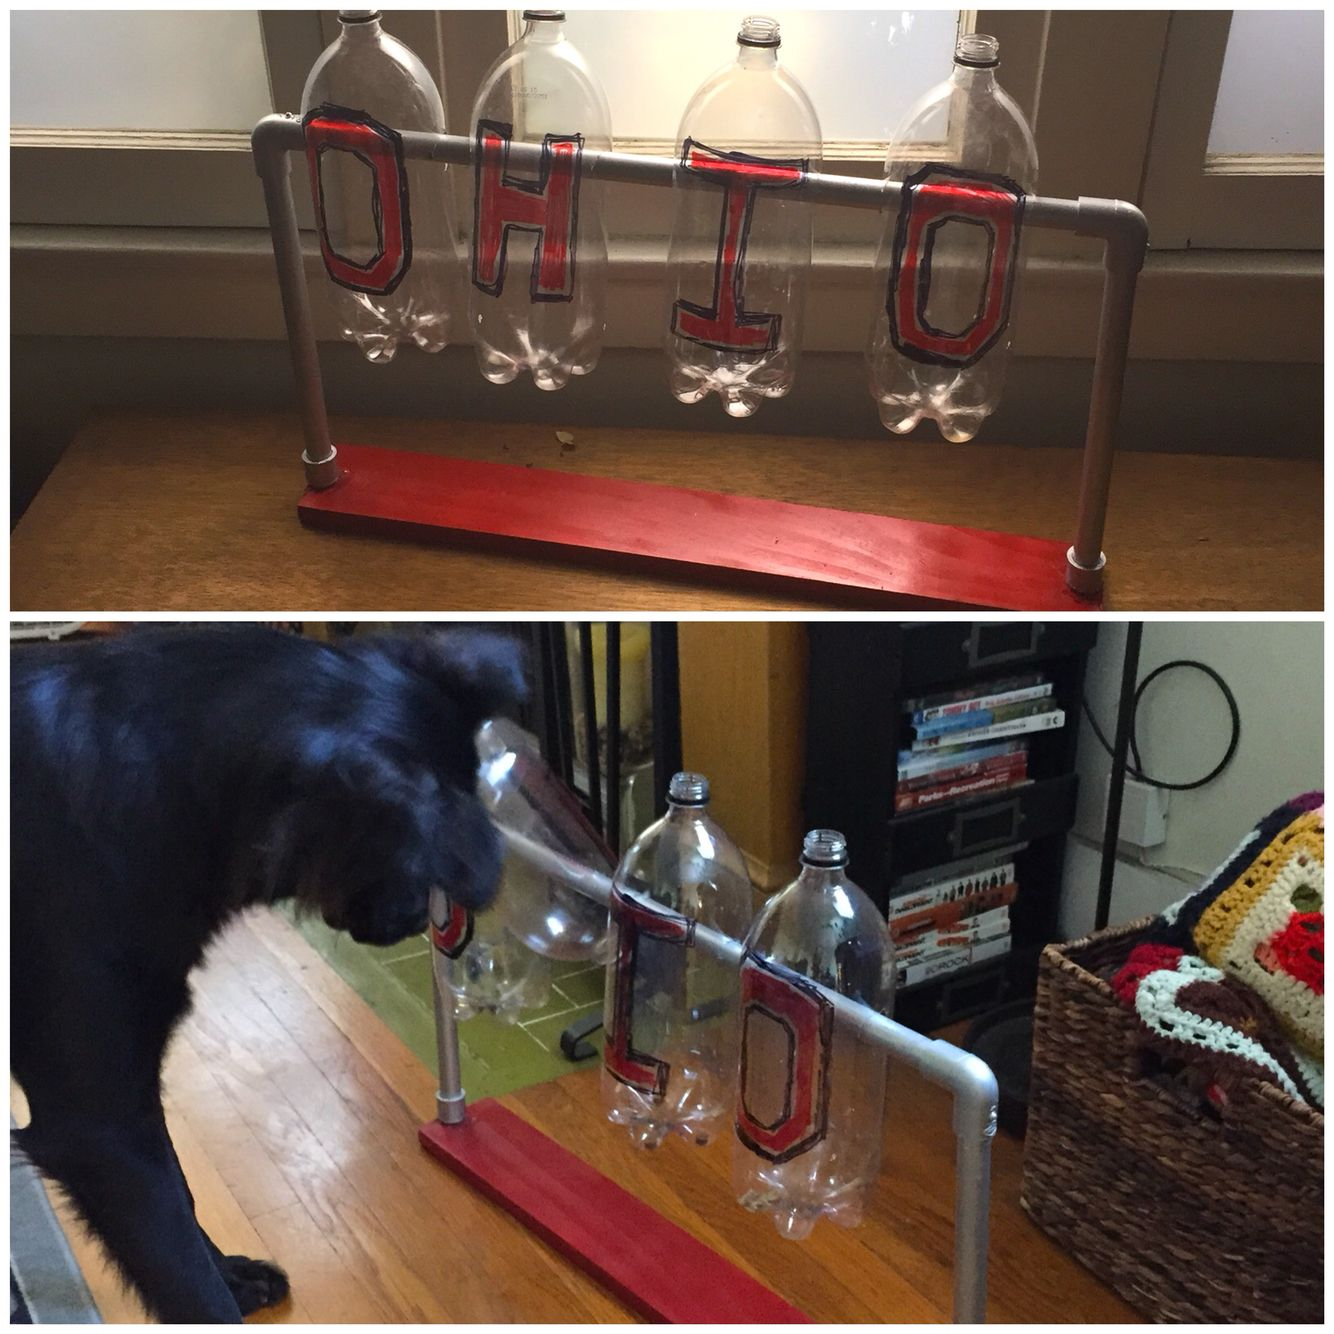 Diy Treat Dispenser Using Only Pvc Piping Screws And A Board